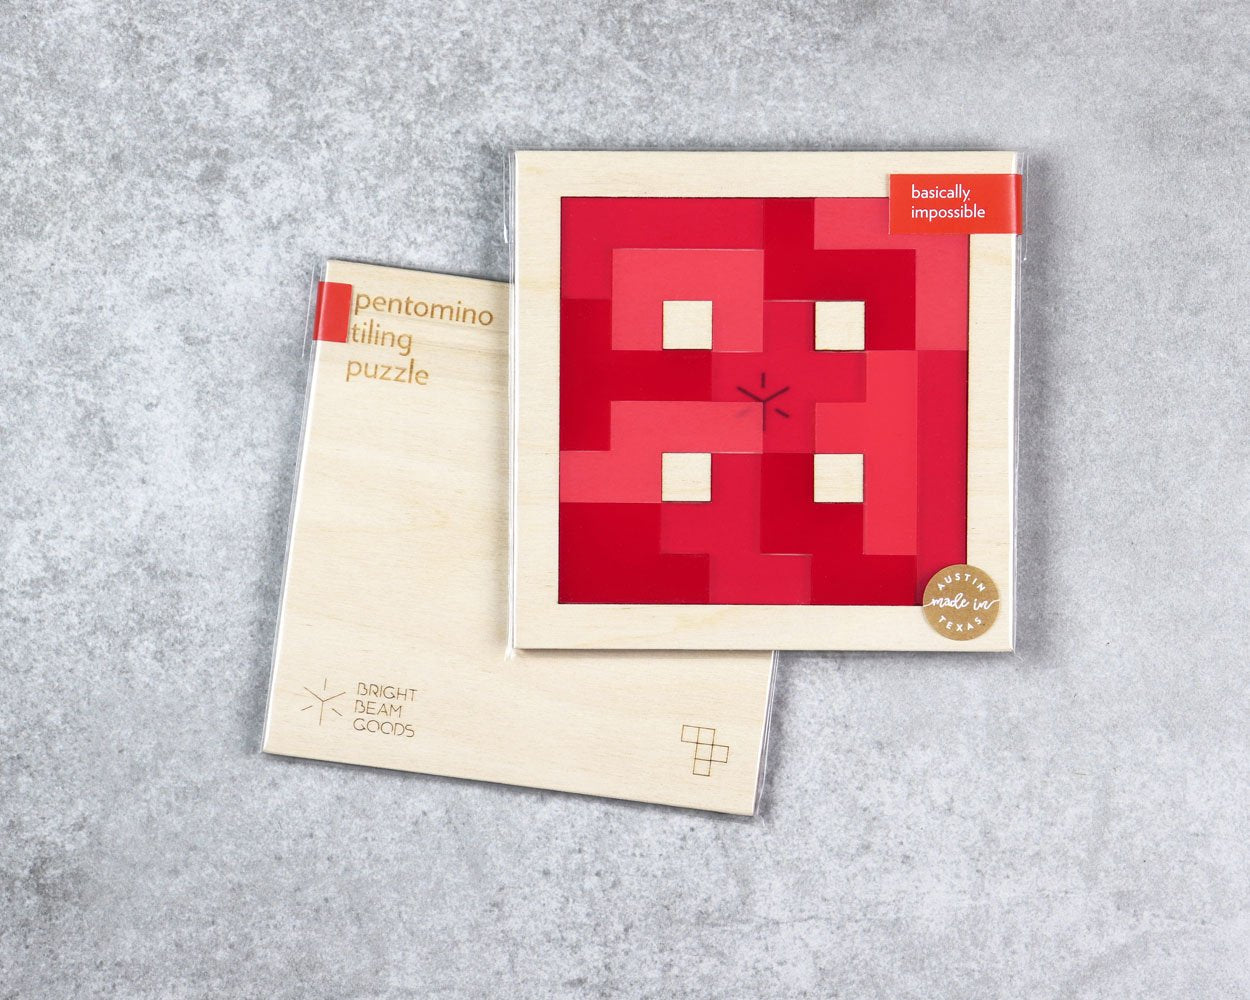 Strawberry square pentomino puzzle in packaging